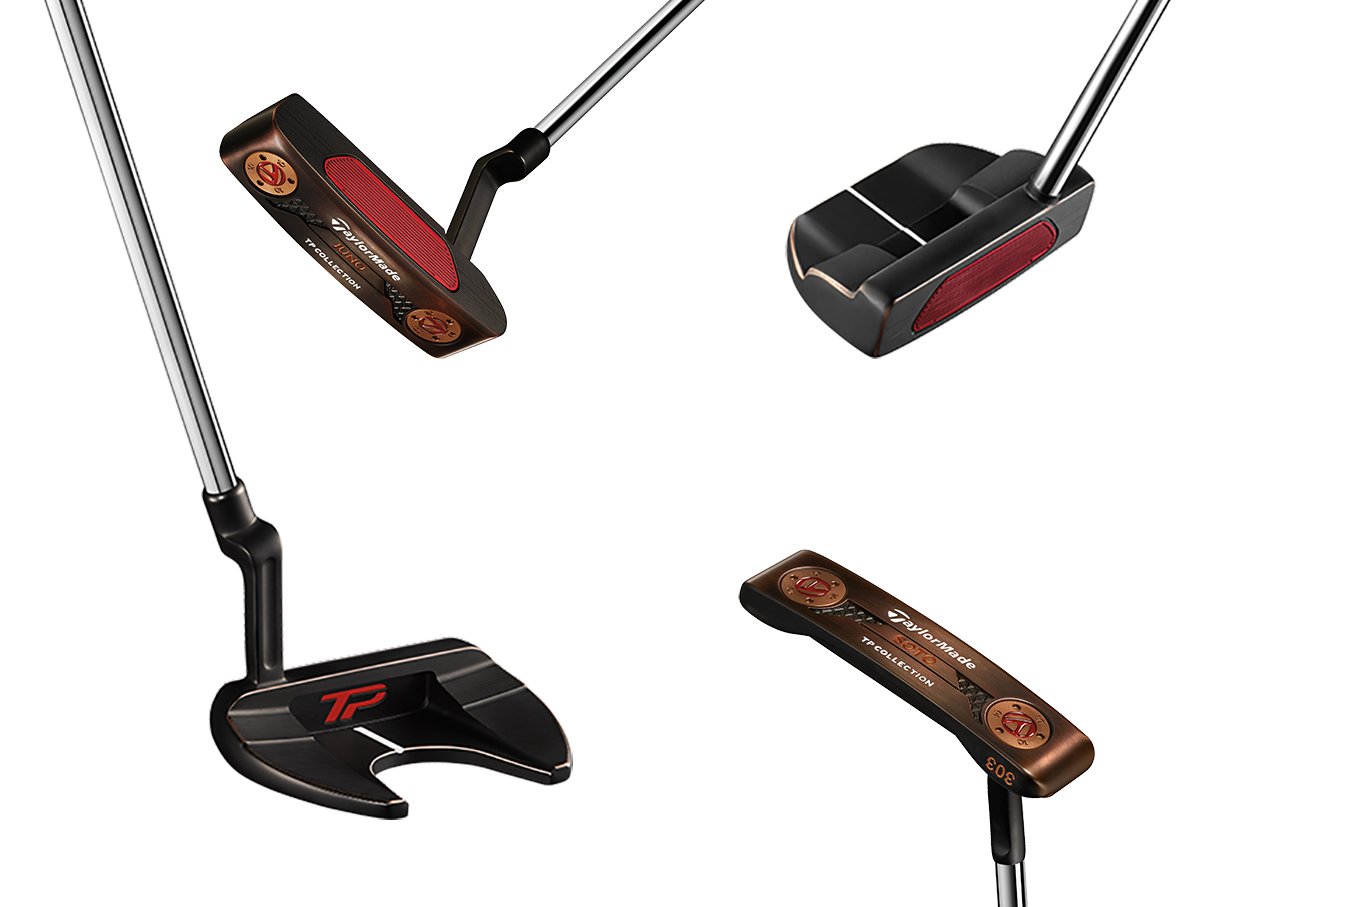 TaylorMade release TP Black Copper Collection of putters, used by Rory McIlroy